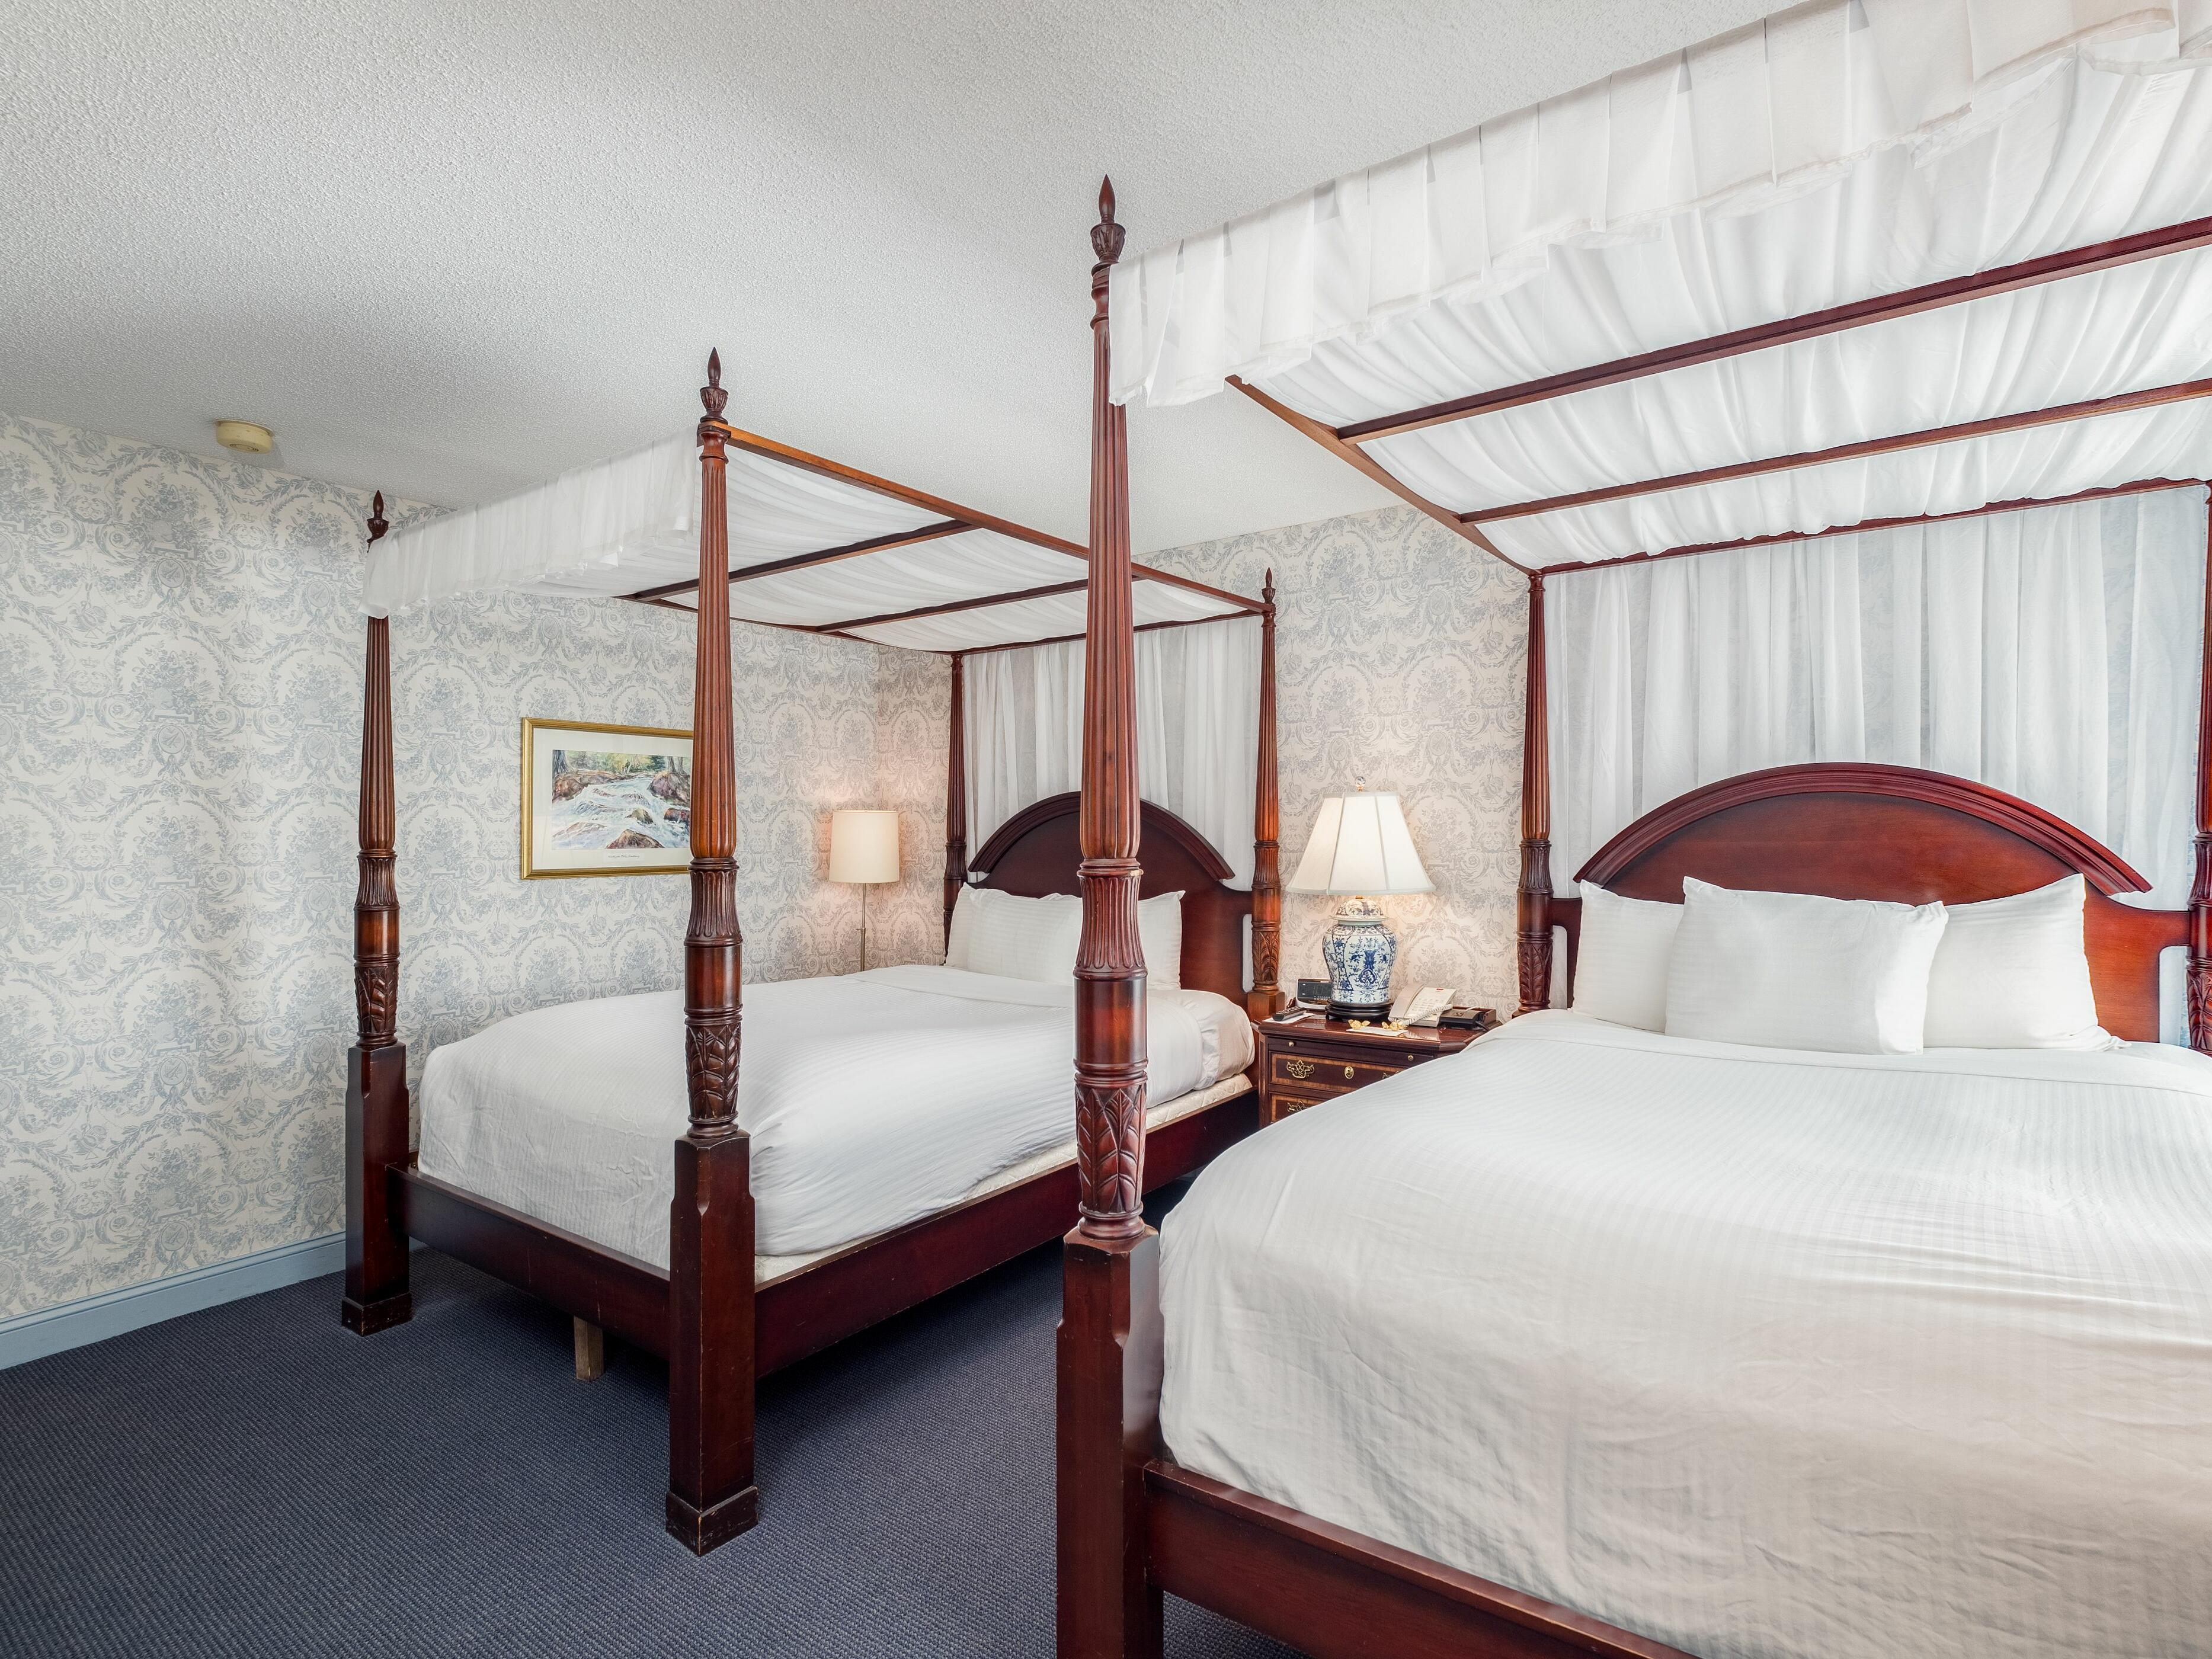 View of Deluxe Room with Two Beds at Farmington Inn